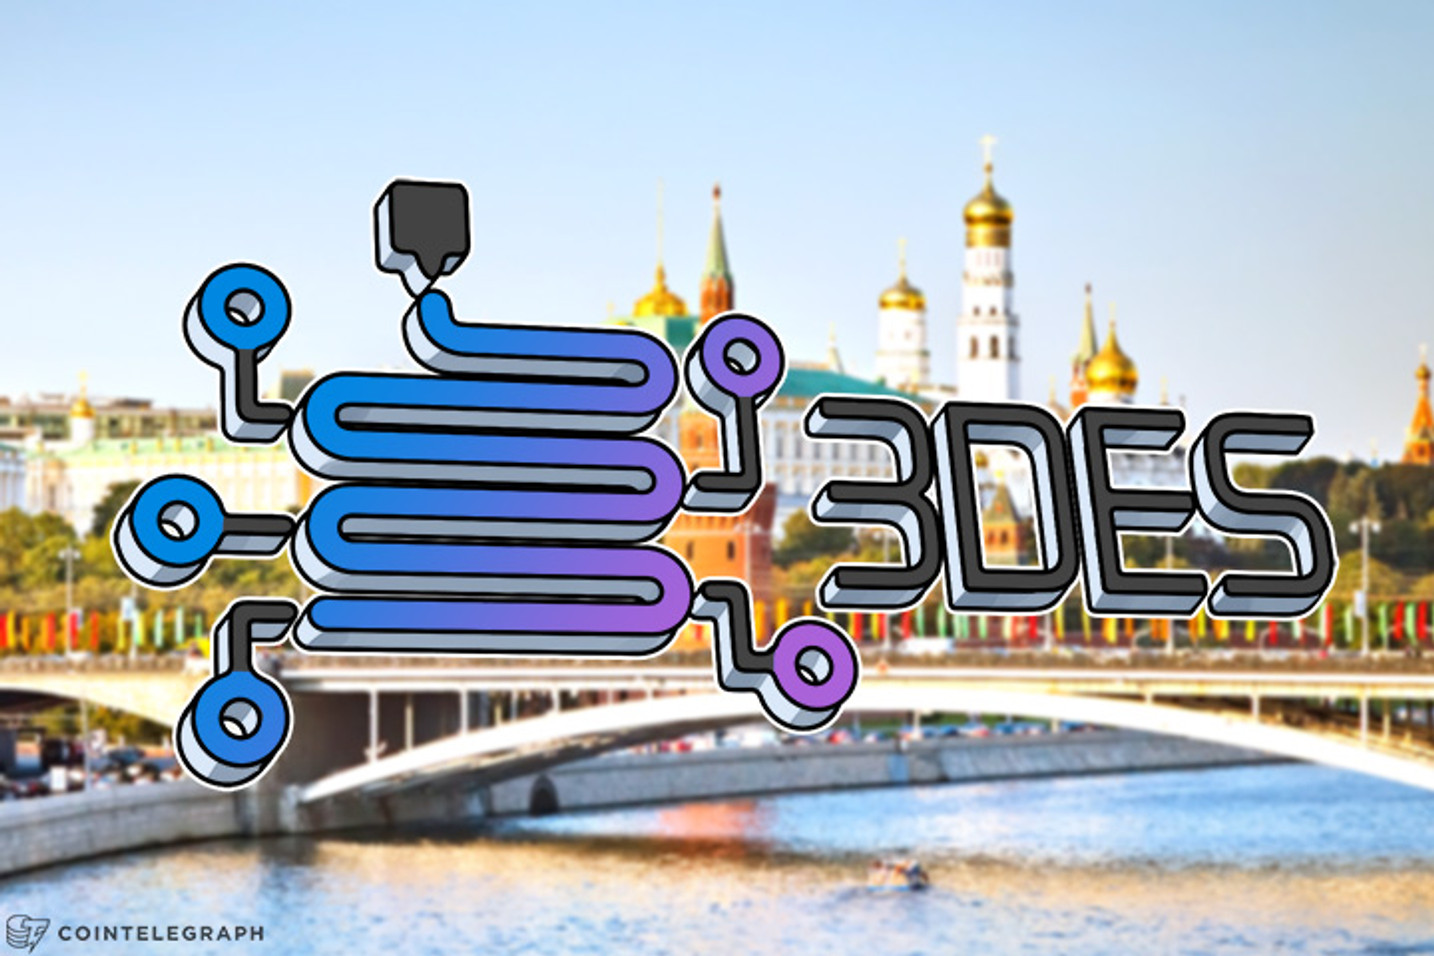 3DES: Blockchain For the Sake of 3D Printing, Not the Blockchain Itself